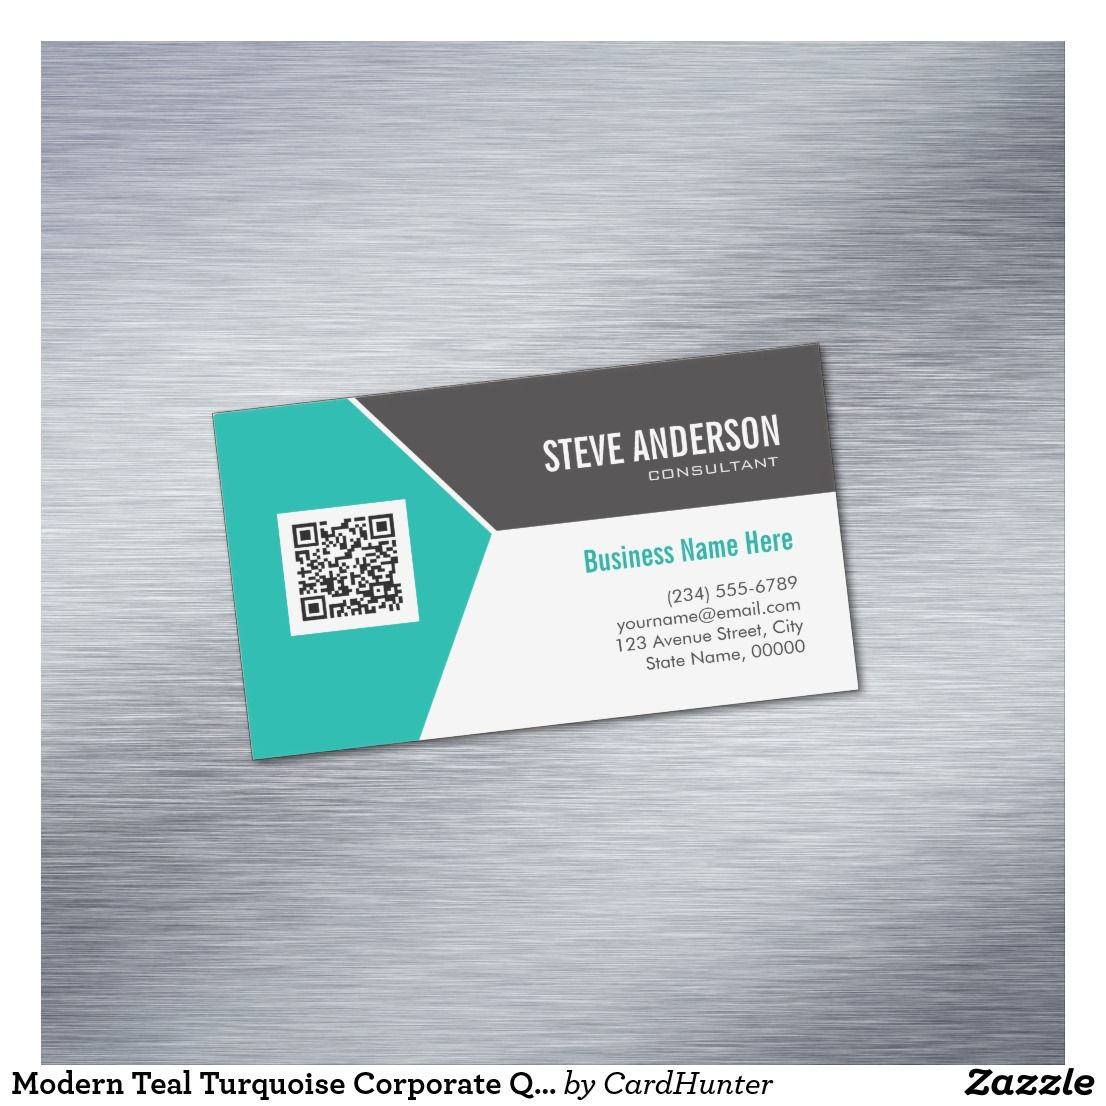 Modern Teal Turquoise Corporate QR Code Logo Magnetic Business ...